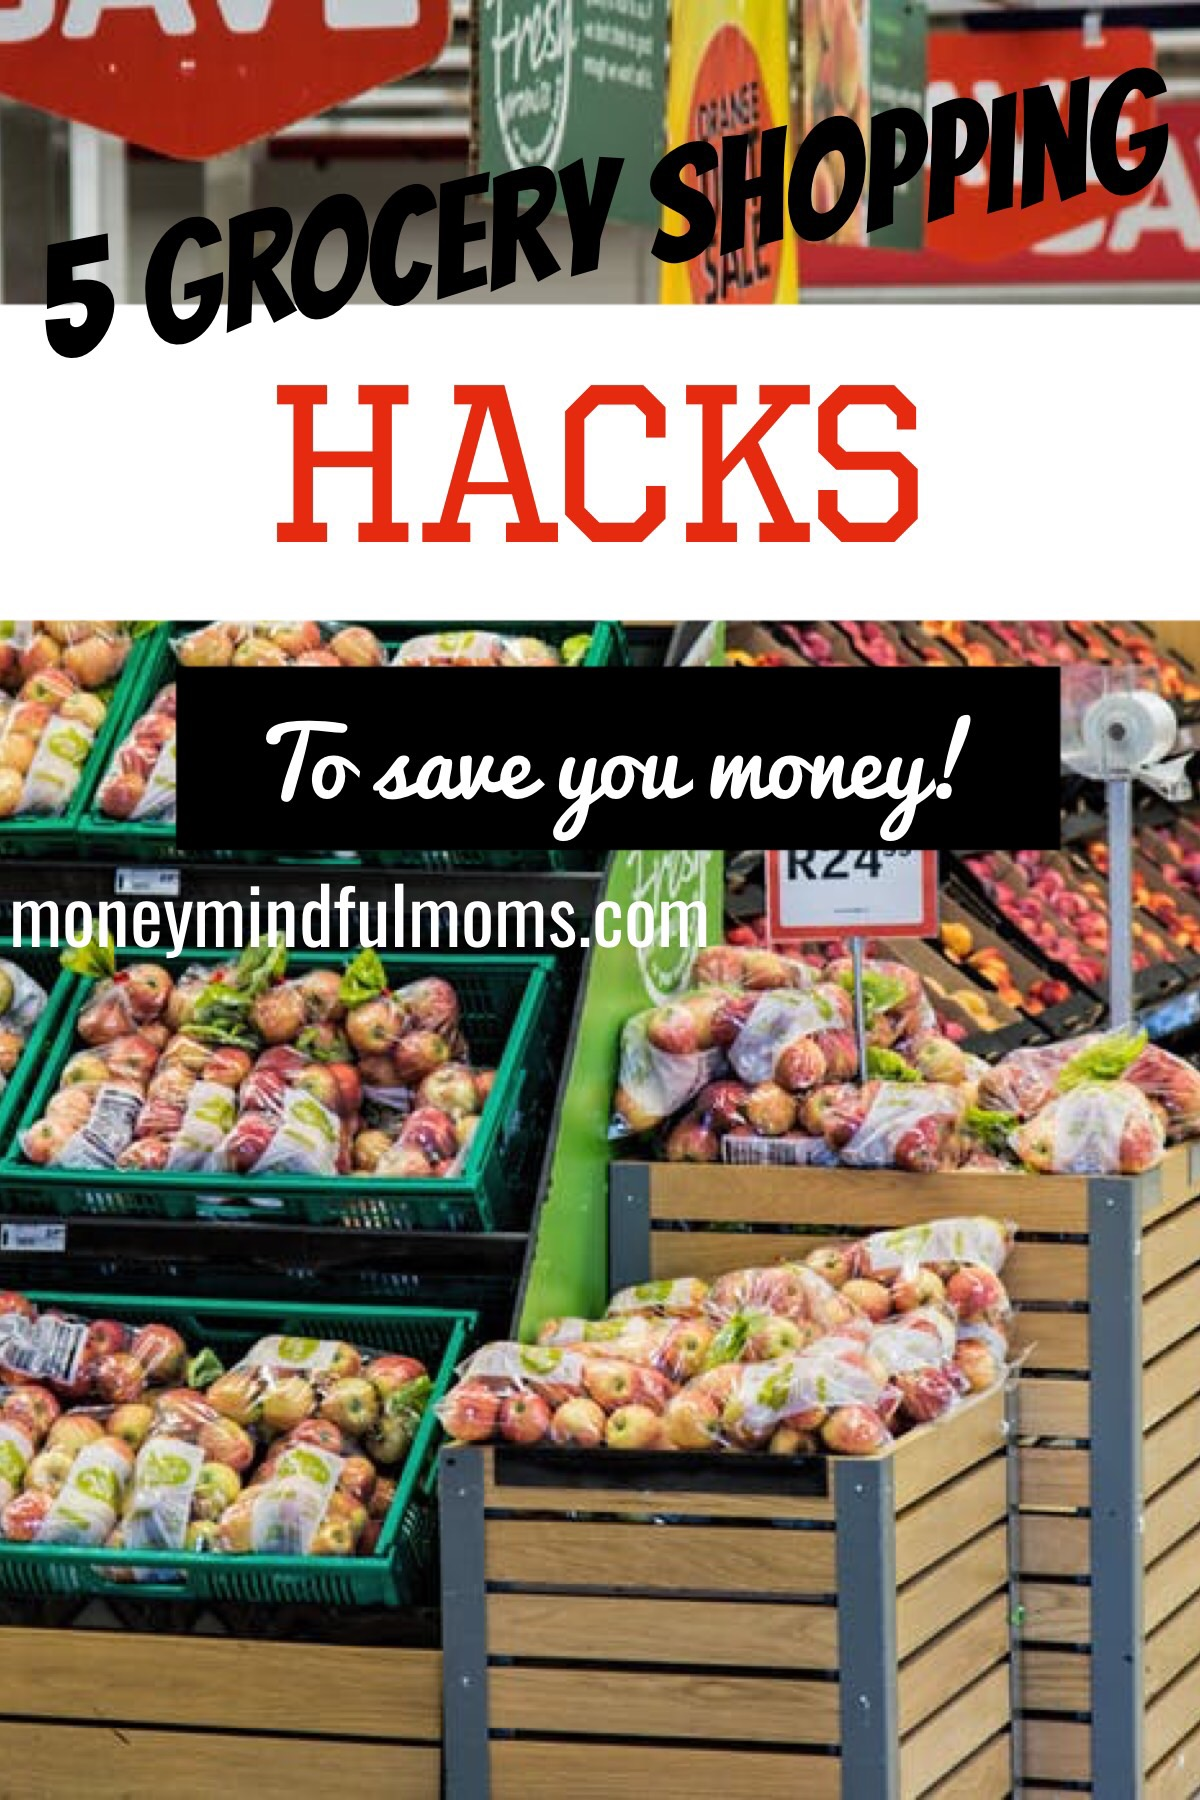 5 Grocery shopping hacks to save you money!